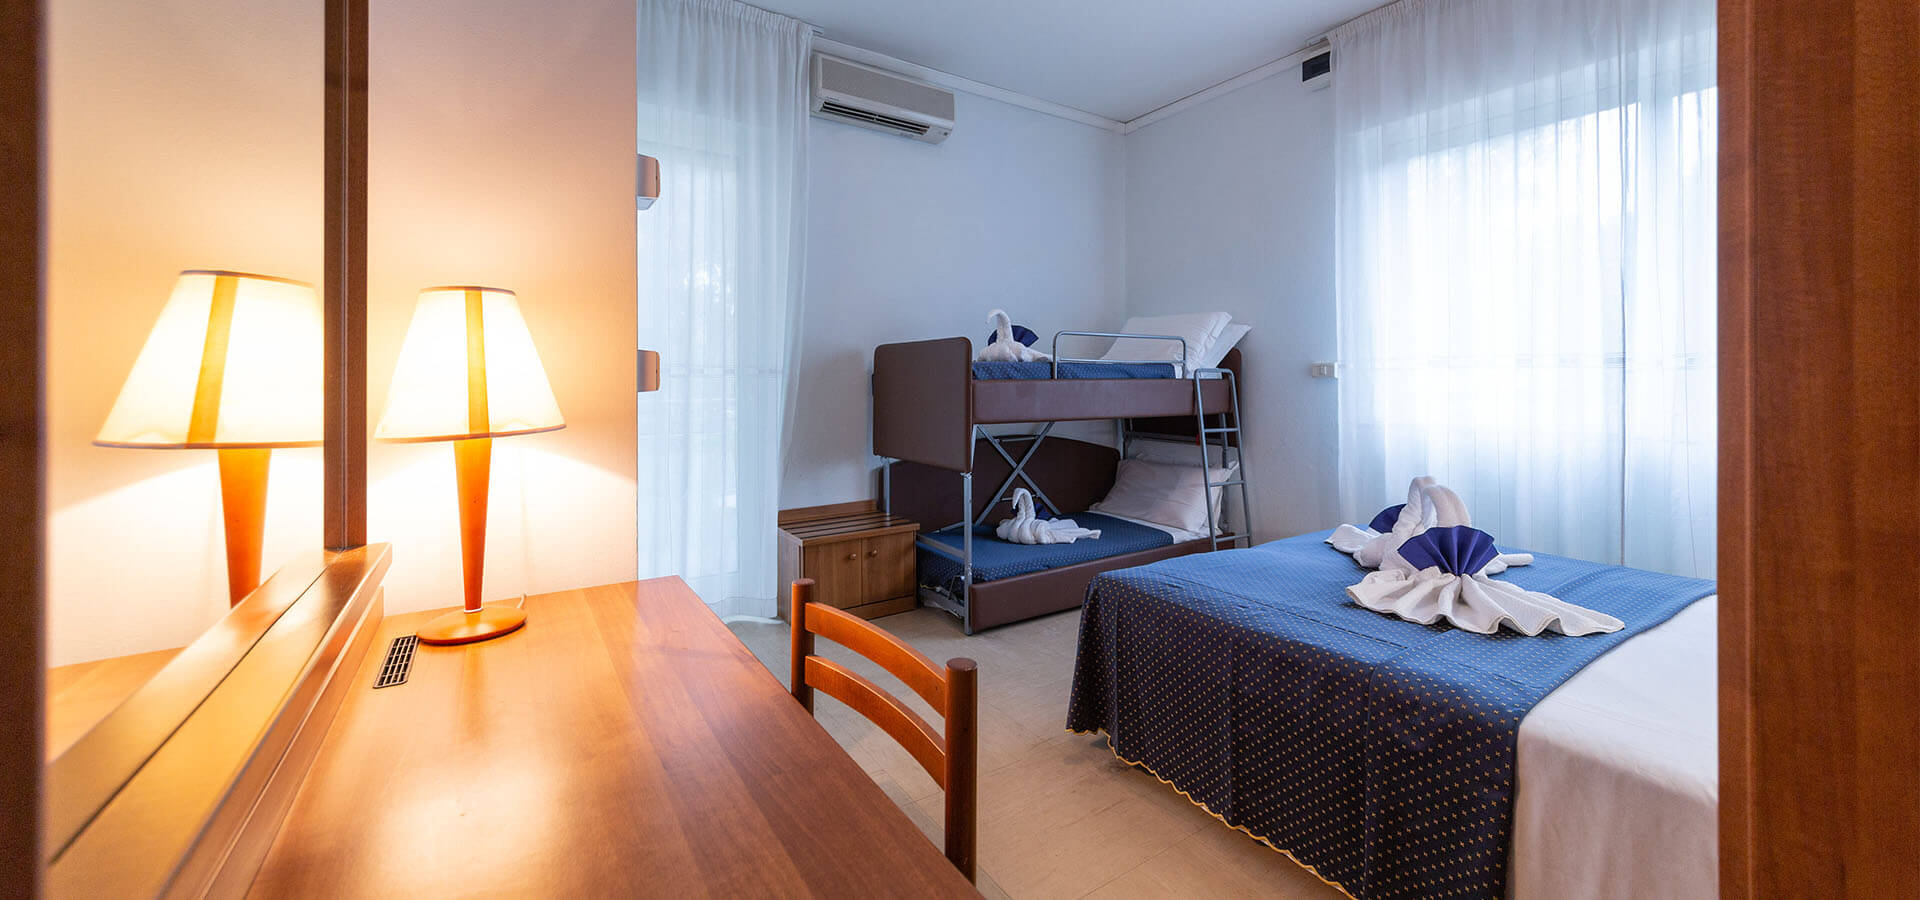 family room hotel in Lignano Sabbiadoro